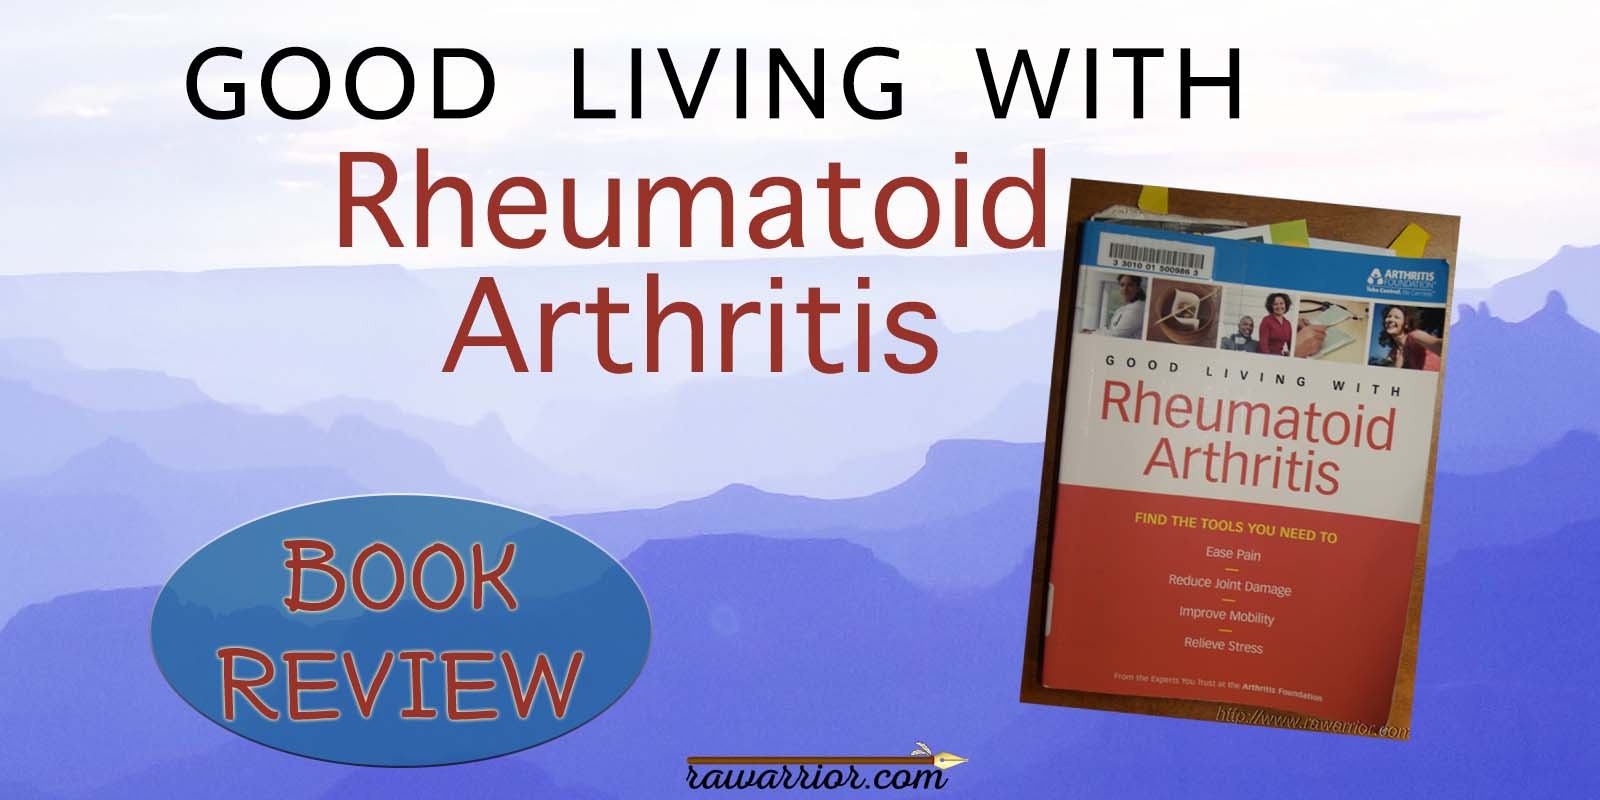 Good Living with Rheumatoid Arthritis book review